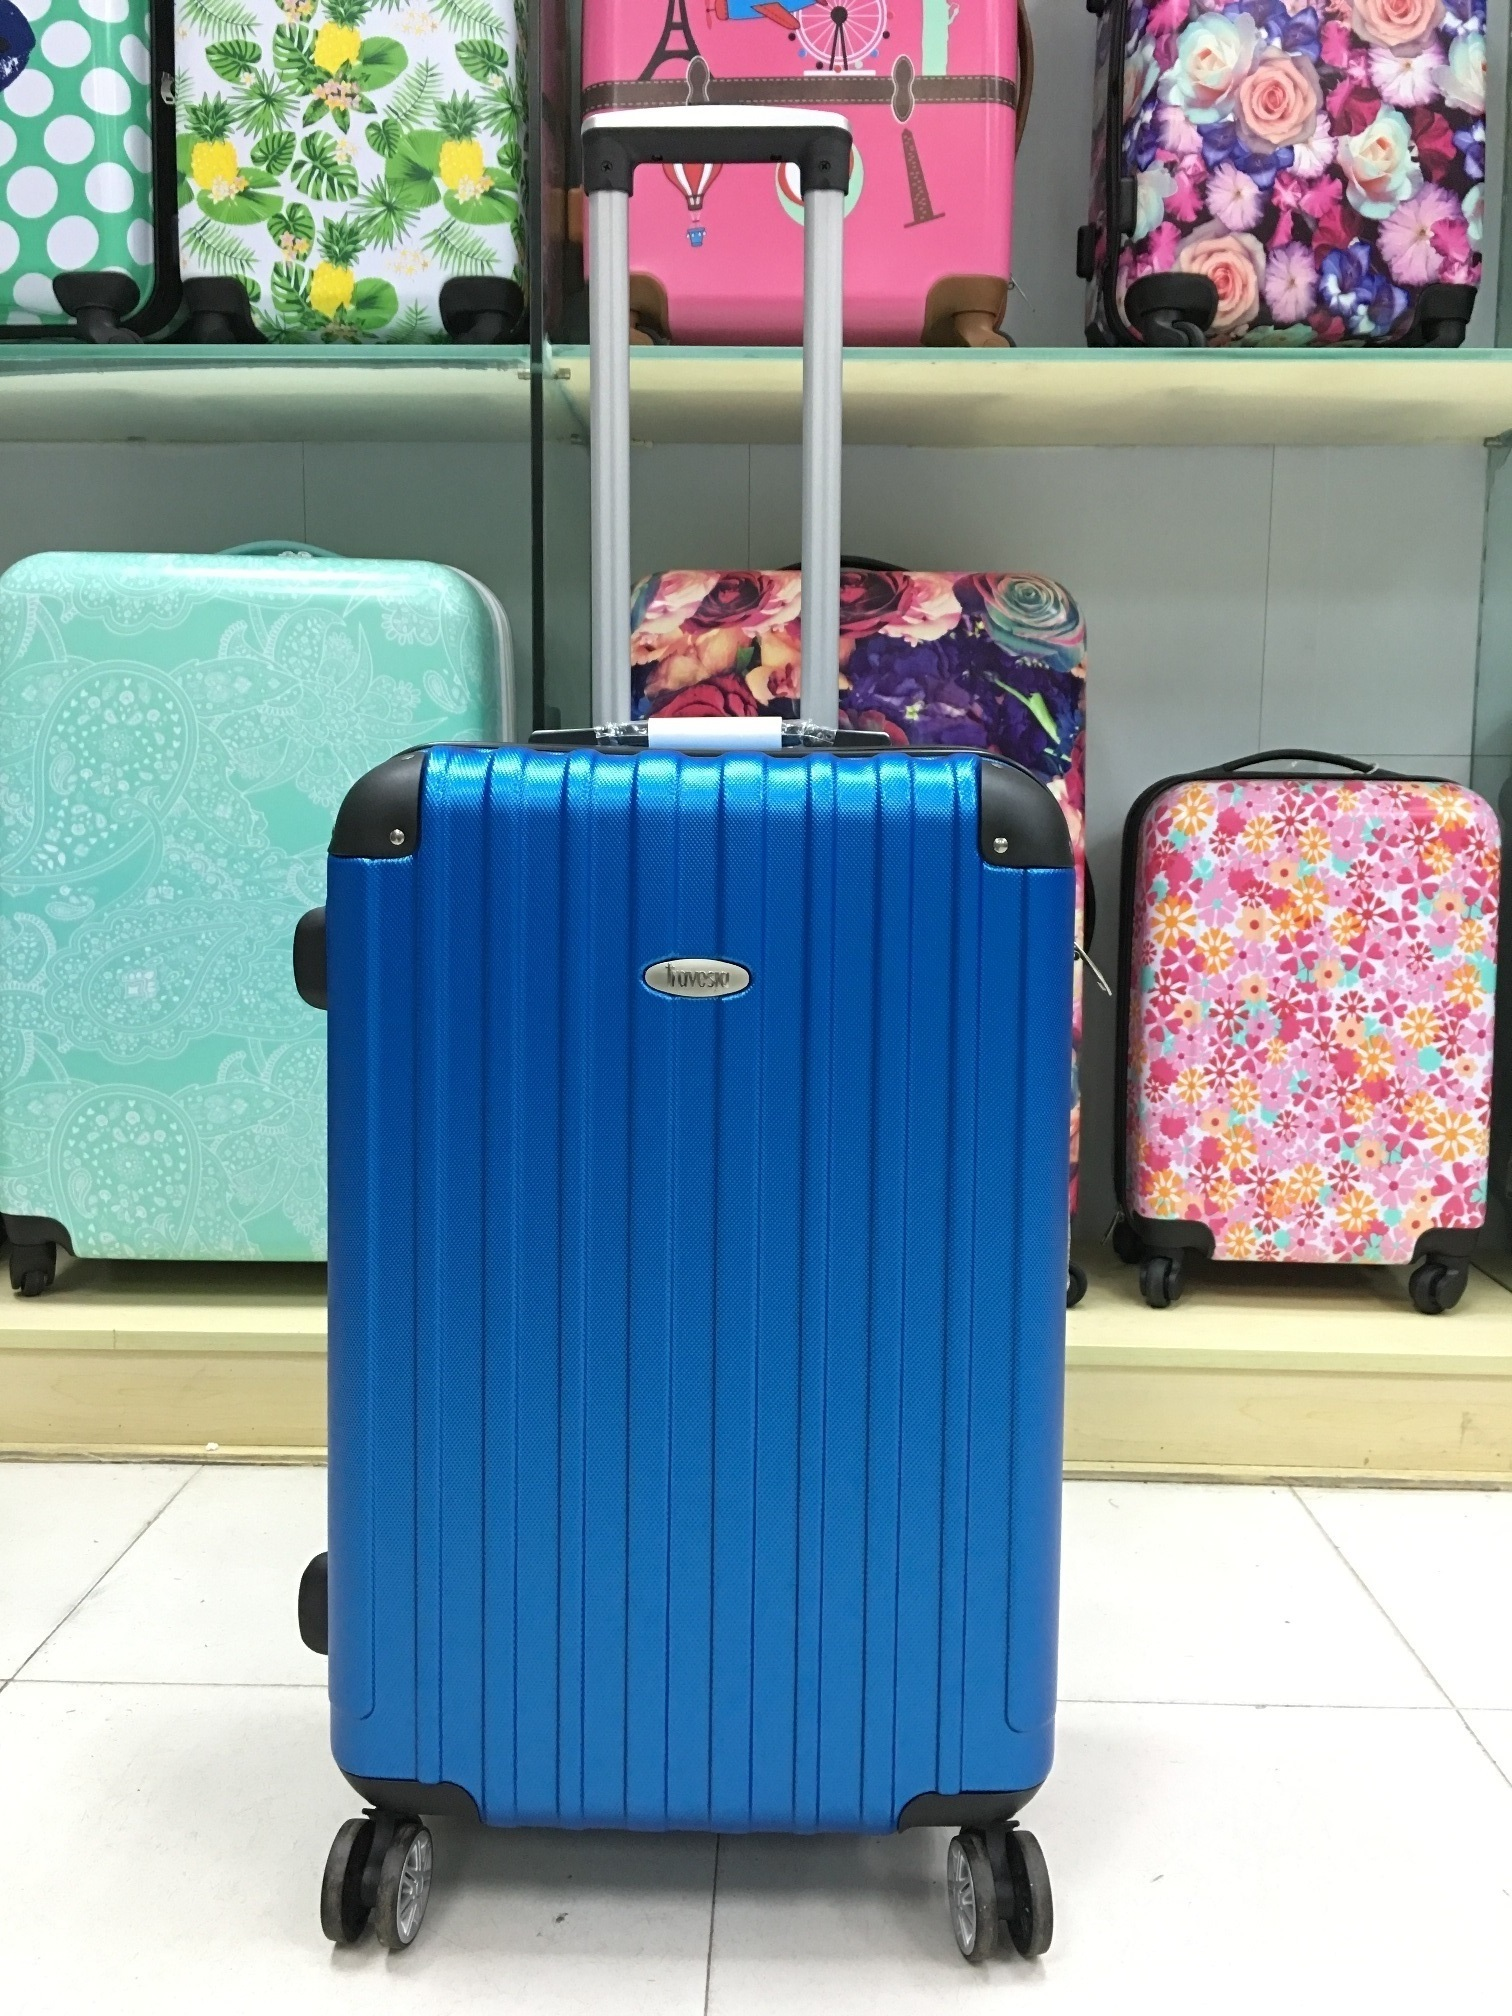 yanteng lucas luggage with anti-shock double-caster wheels